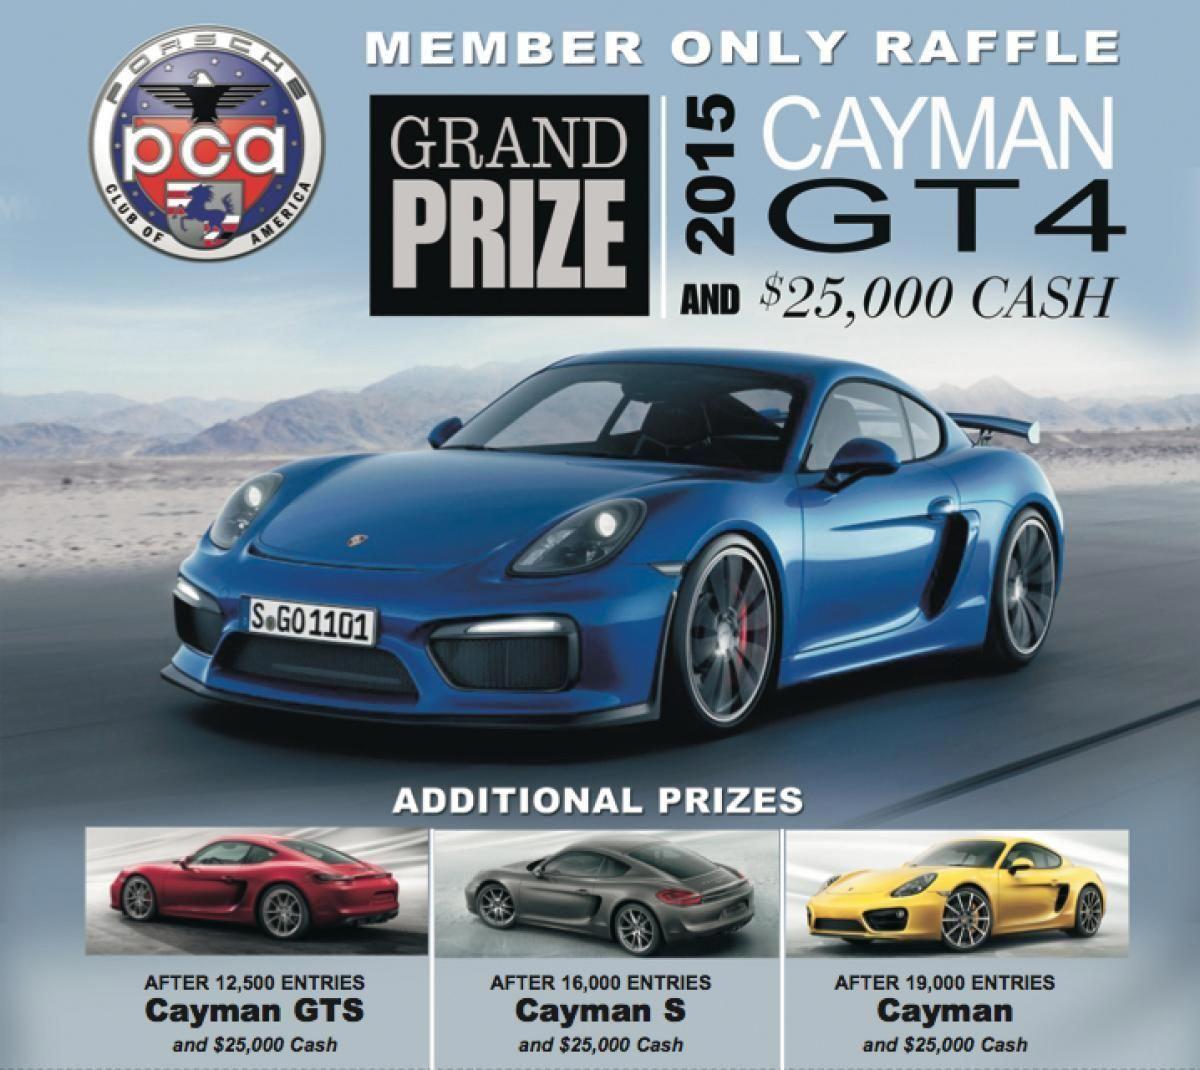 Spring 2015 Member Only Raffle: Cayman GT4 Grand Prize